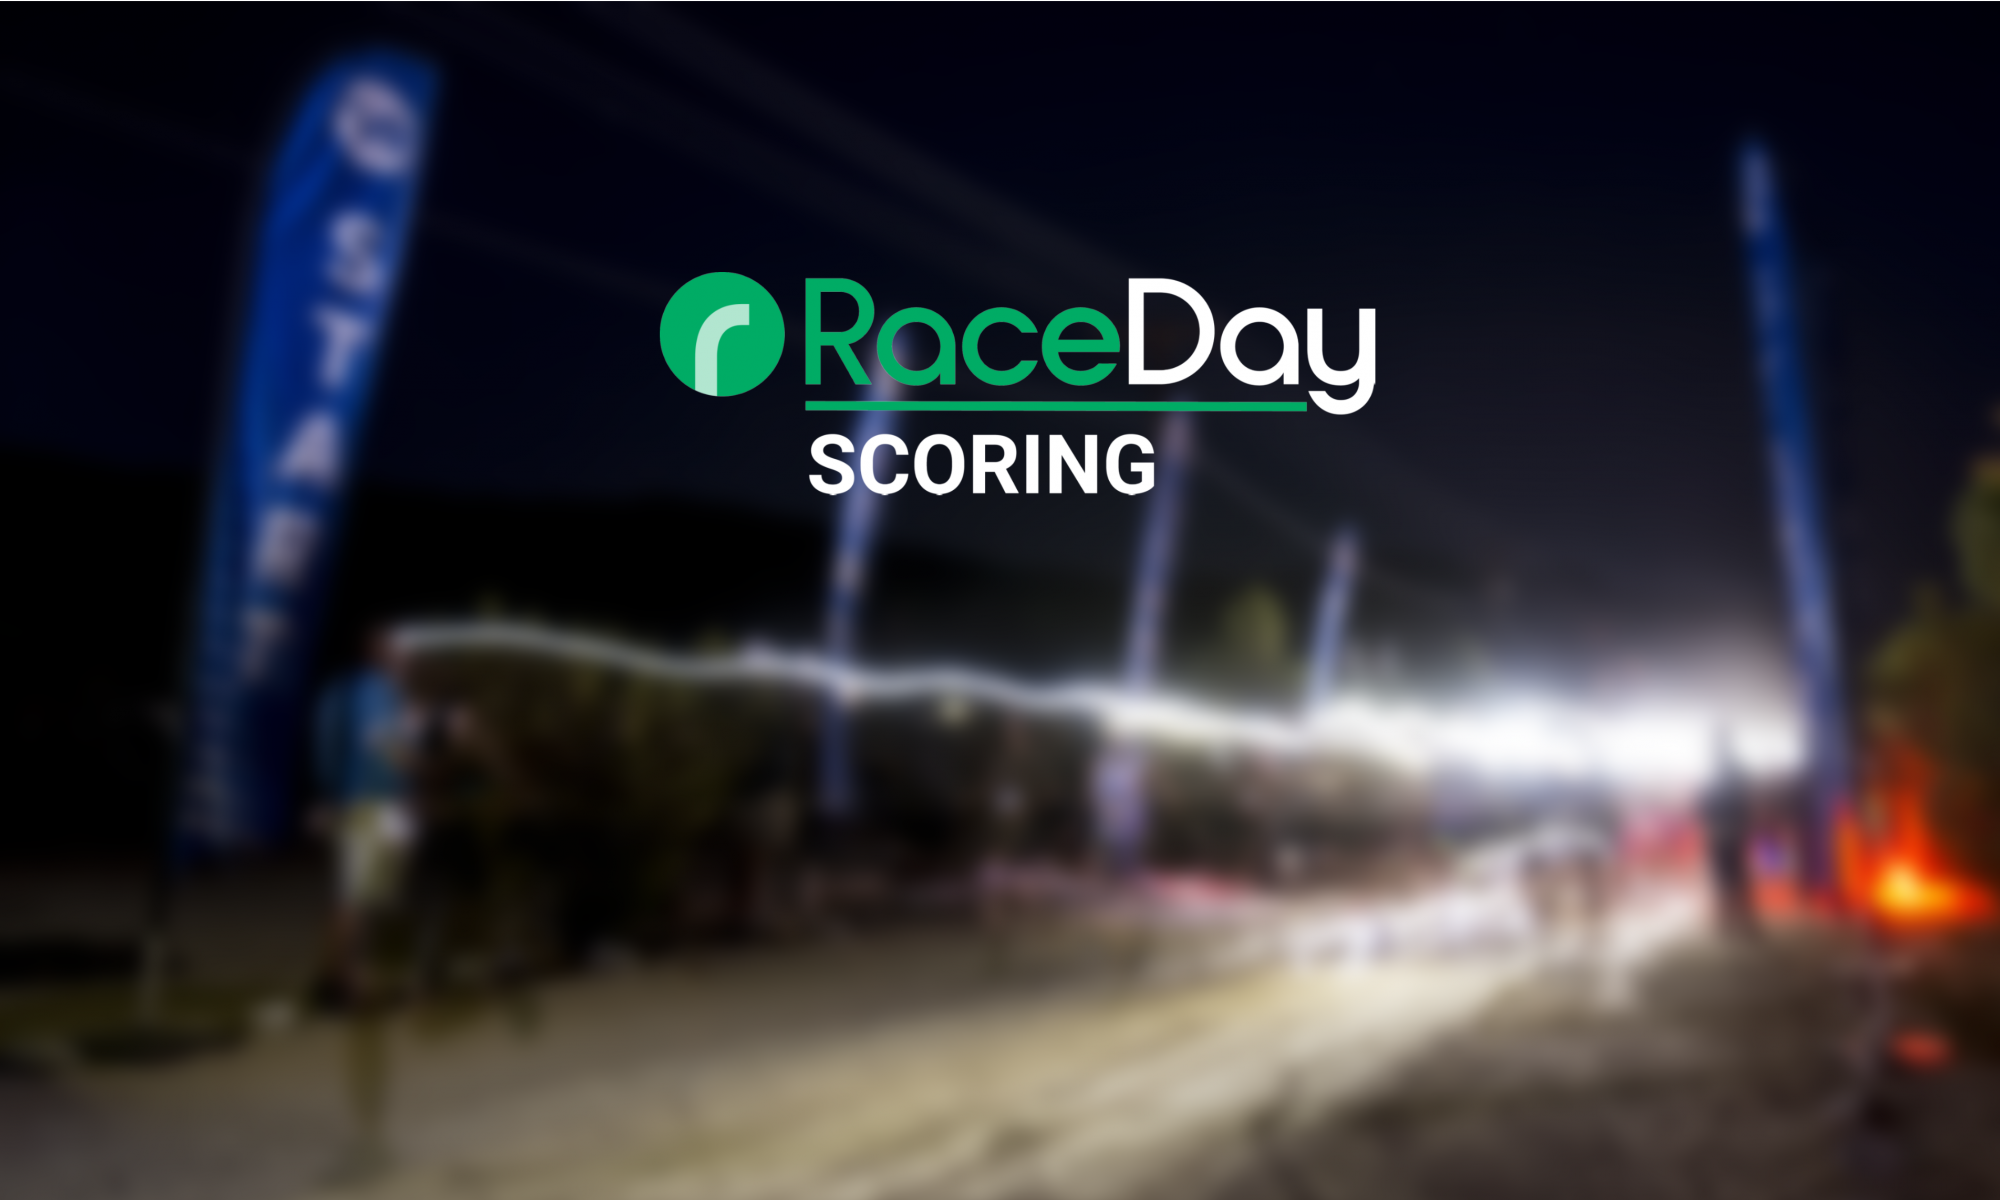 RaceDay Scoring